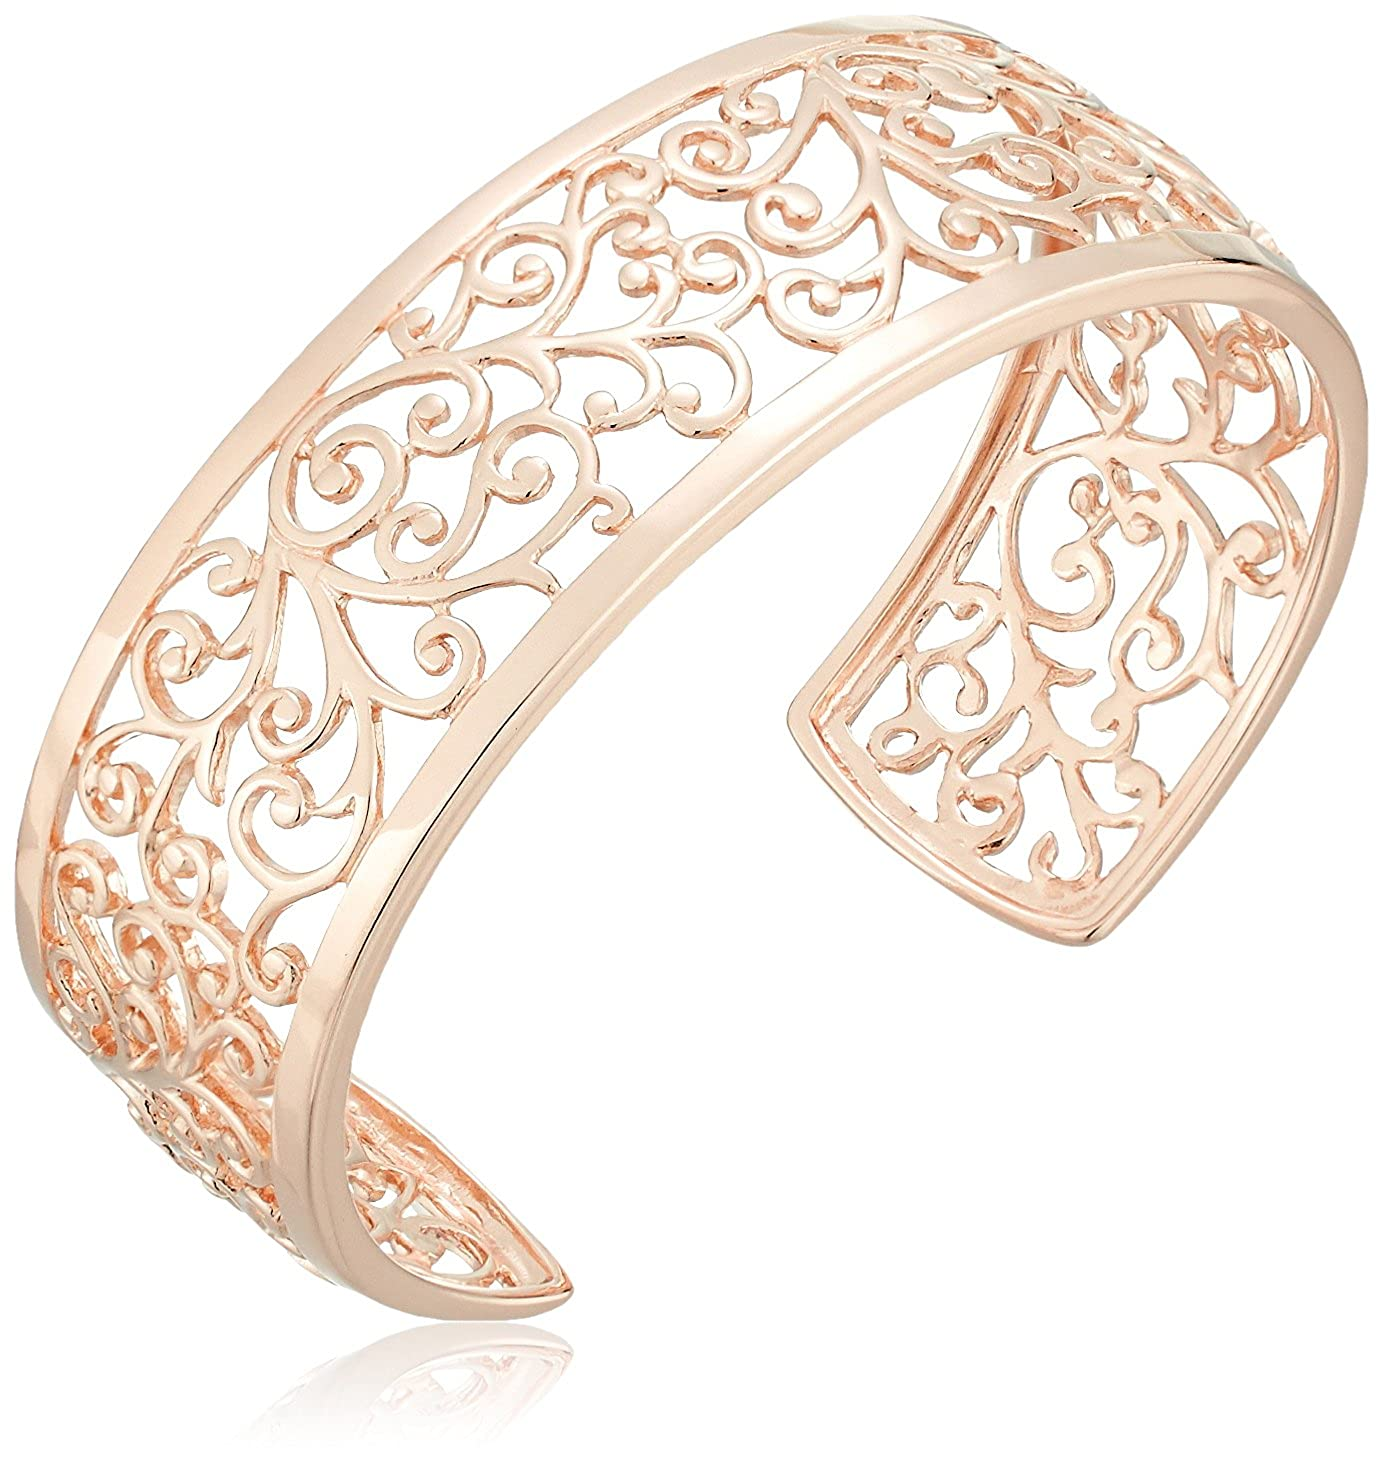 Sterling Silver Filigree Open Cuff Bracelet, 6.5 6.5 Amazon Collection S15356A0WQ-RNBCF00